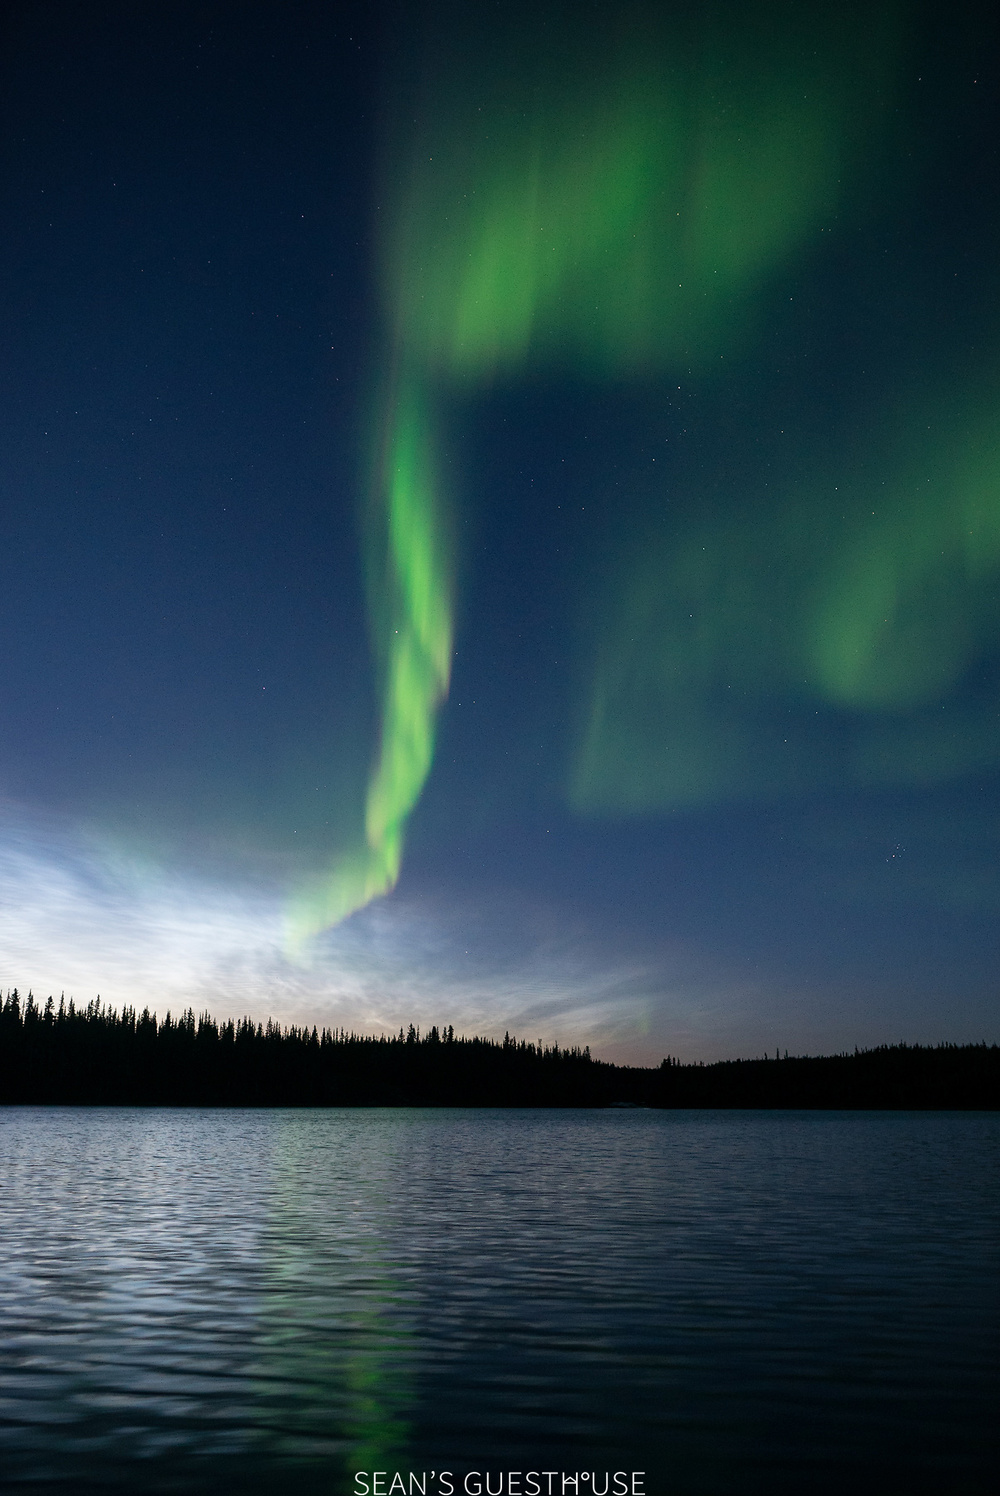 Sean's Guesthouse - Yellowknife Northern Lights Tour - August Aurora - 3.jpg